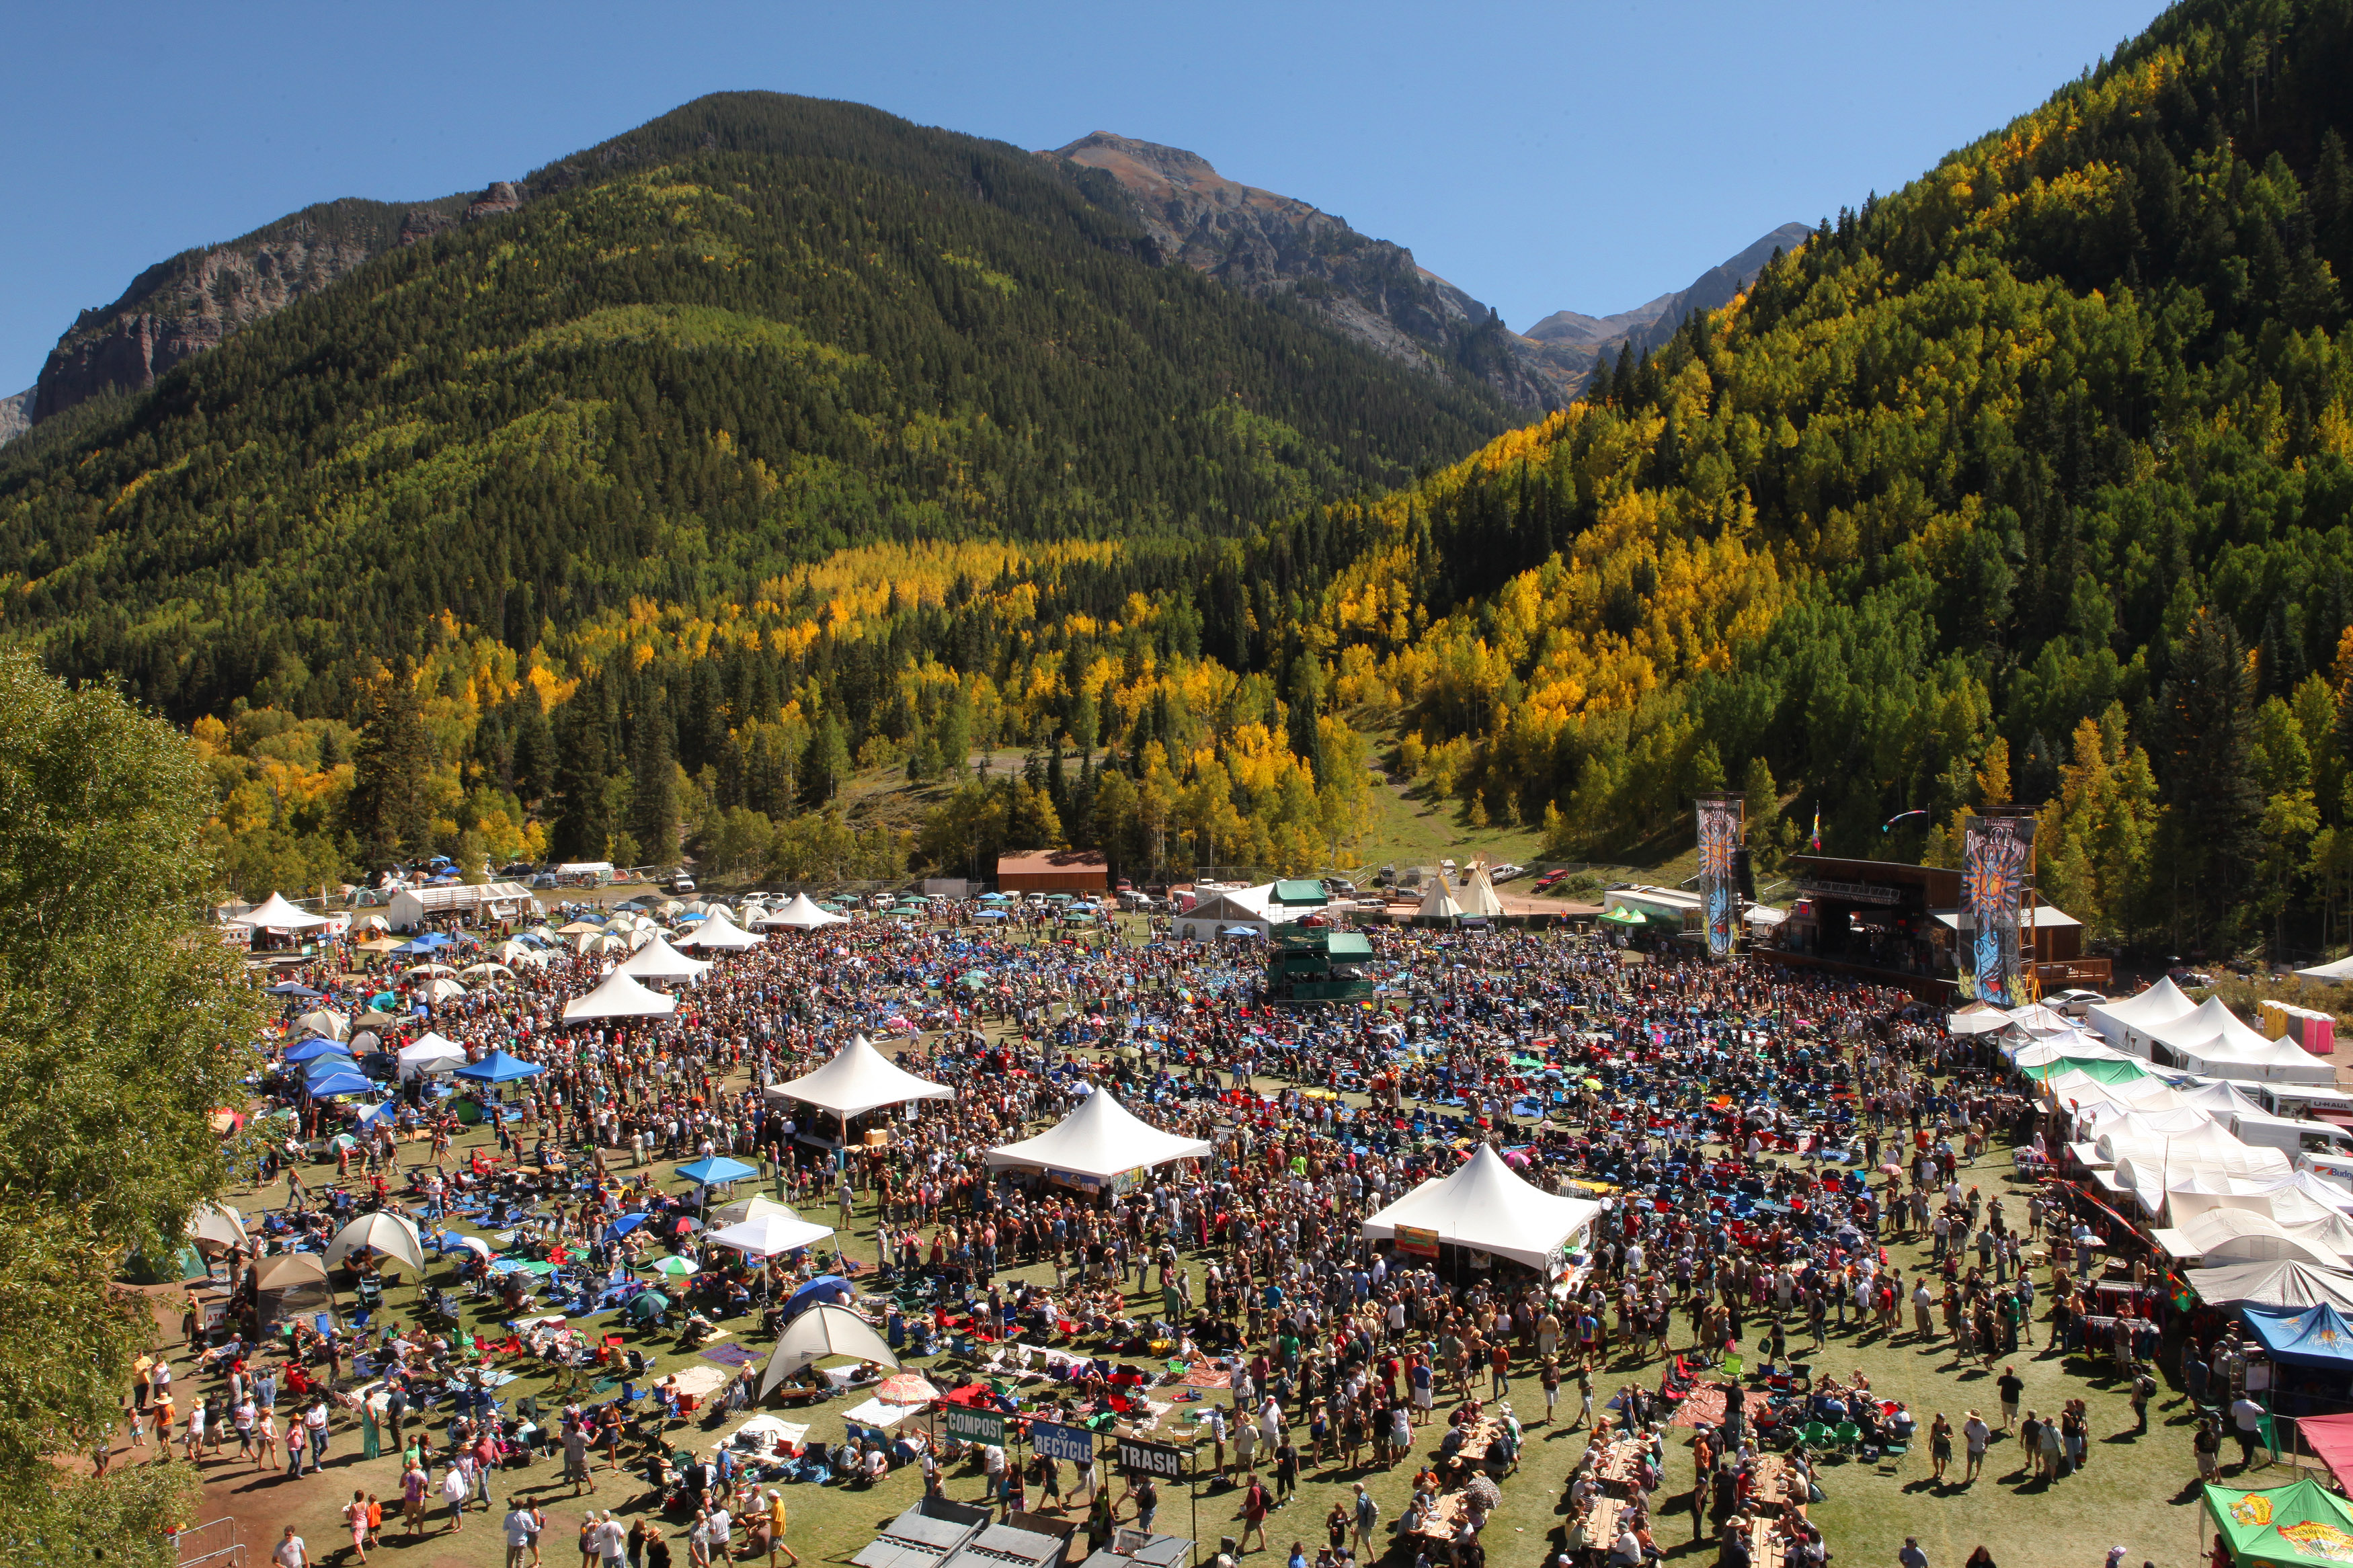 telluride singles Durango blues train jun 1st, 2018 presented by sbg productions and the telluride blues & brews festival, the durango blues train returns to the historic durango.